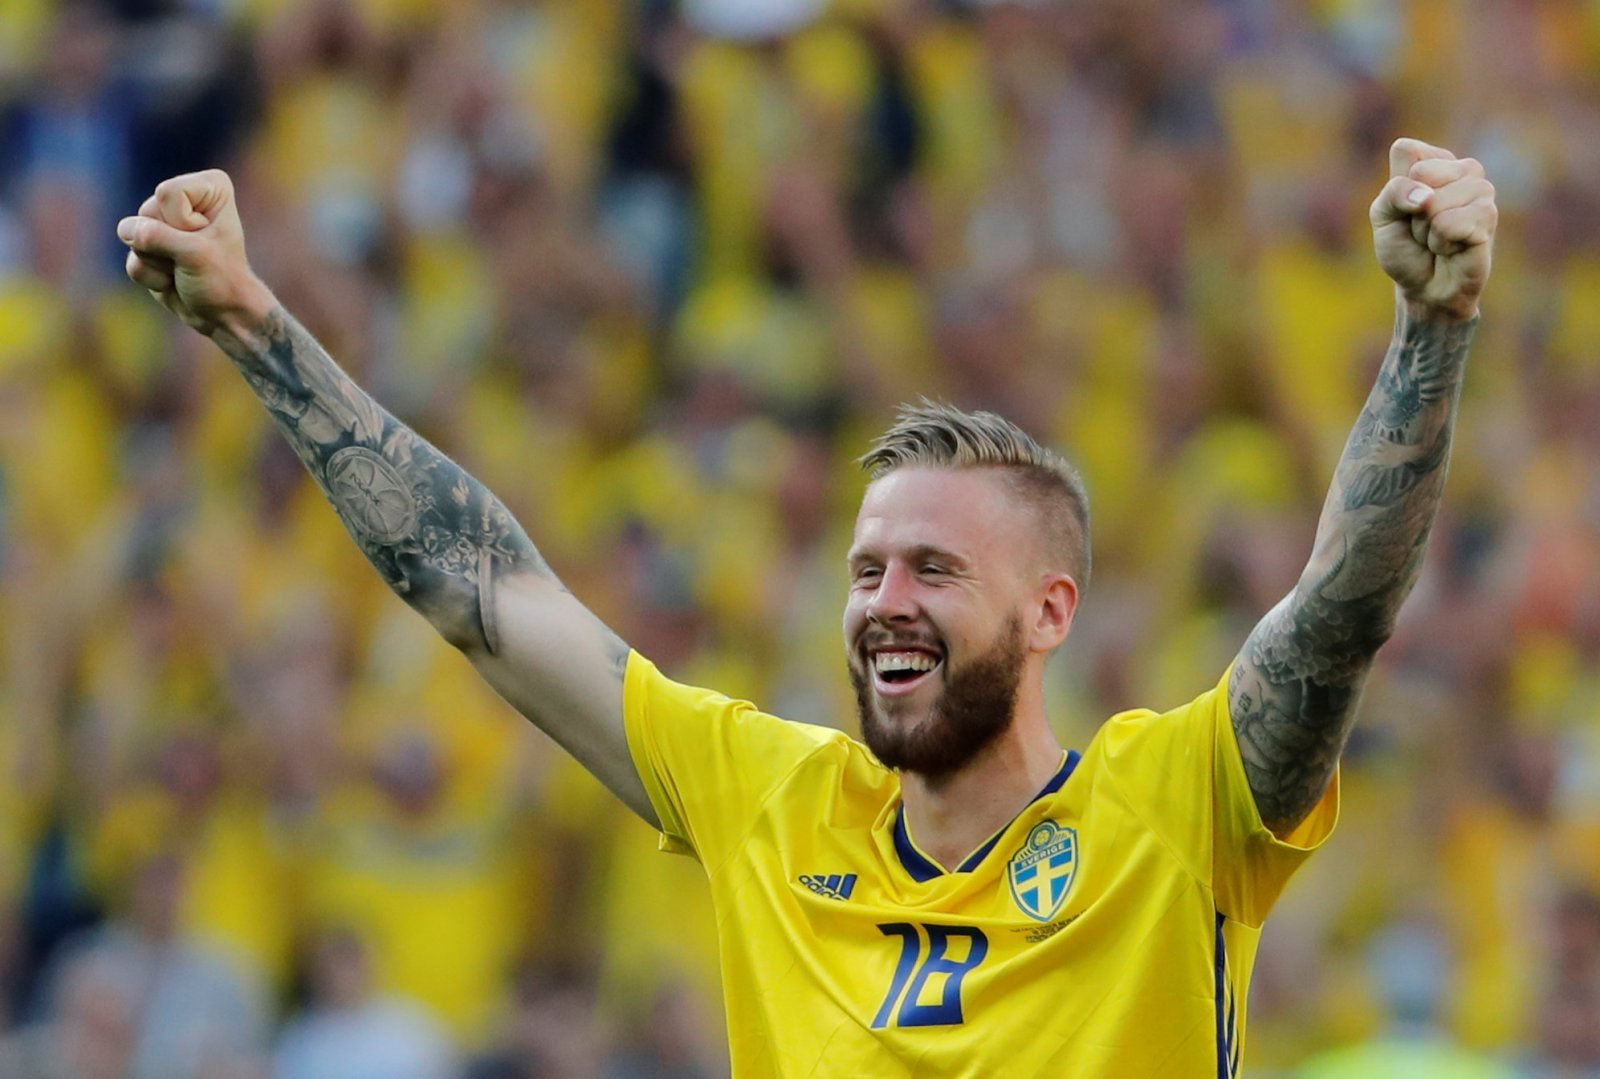 Leeds fans desperate to see Jansson win fans player of the month